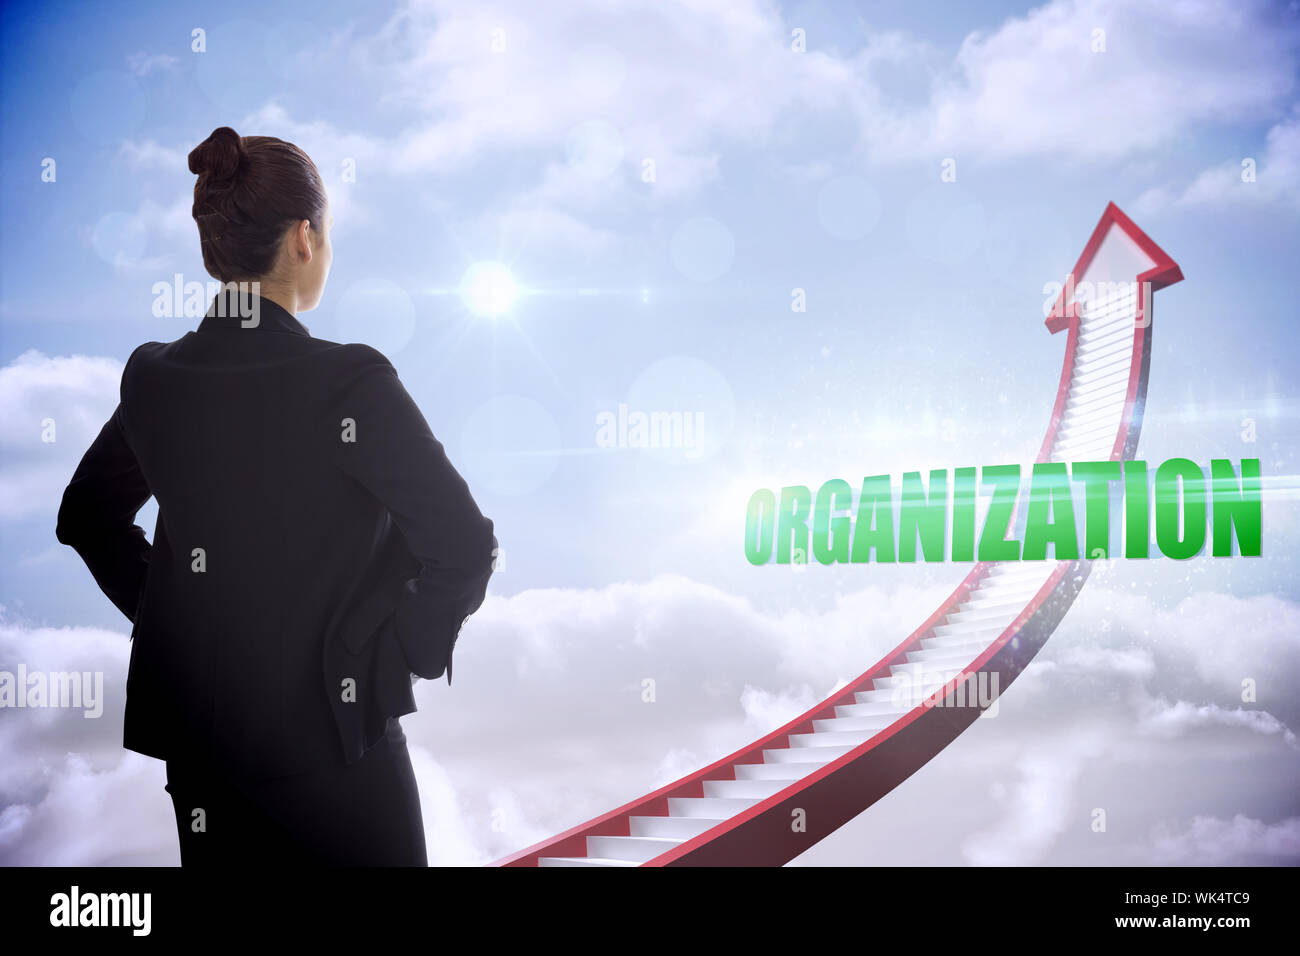 The word organization and businesswoman with hands on hips against red stairs arrow pointing up against sky - Stock Photo